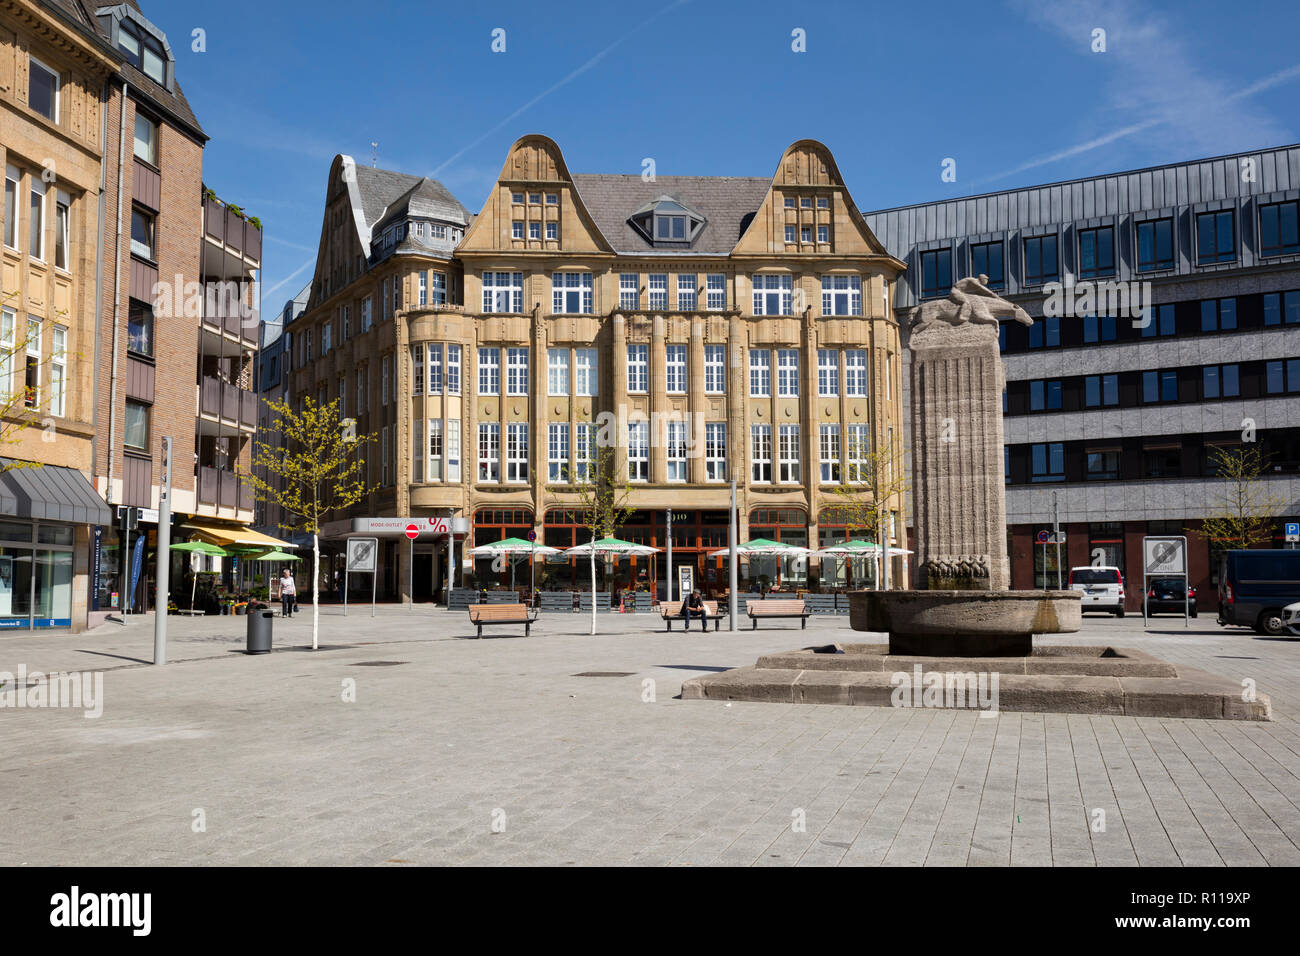 Old town of Castrop-Rauxel, Ruhr district, North Rhine-Westphalia, Germany, Europe - Stock Image